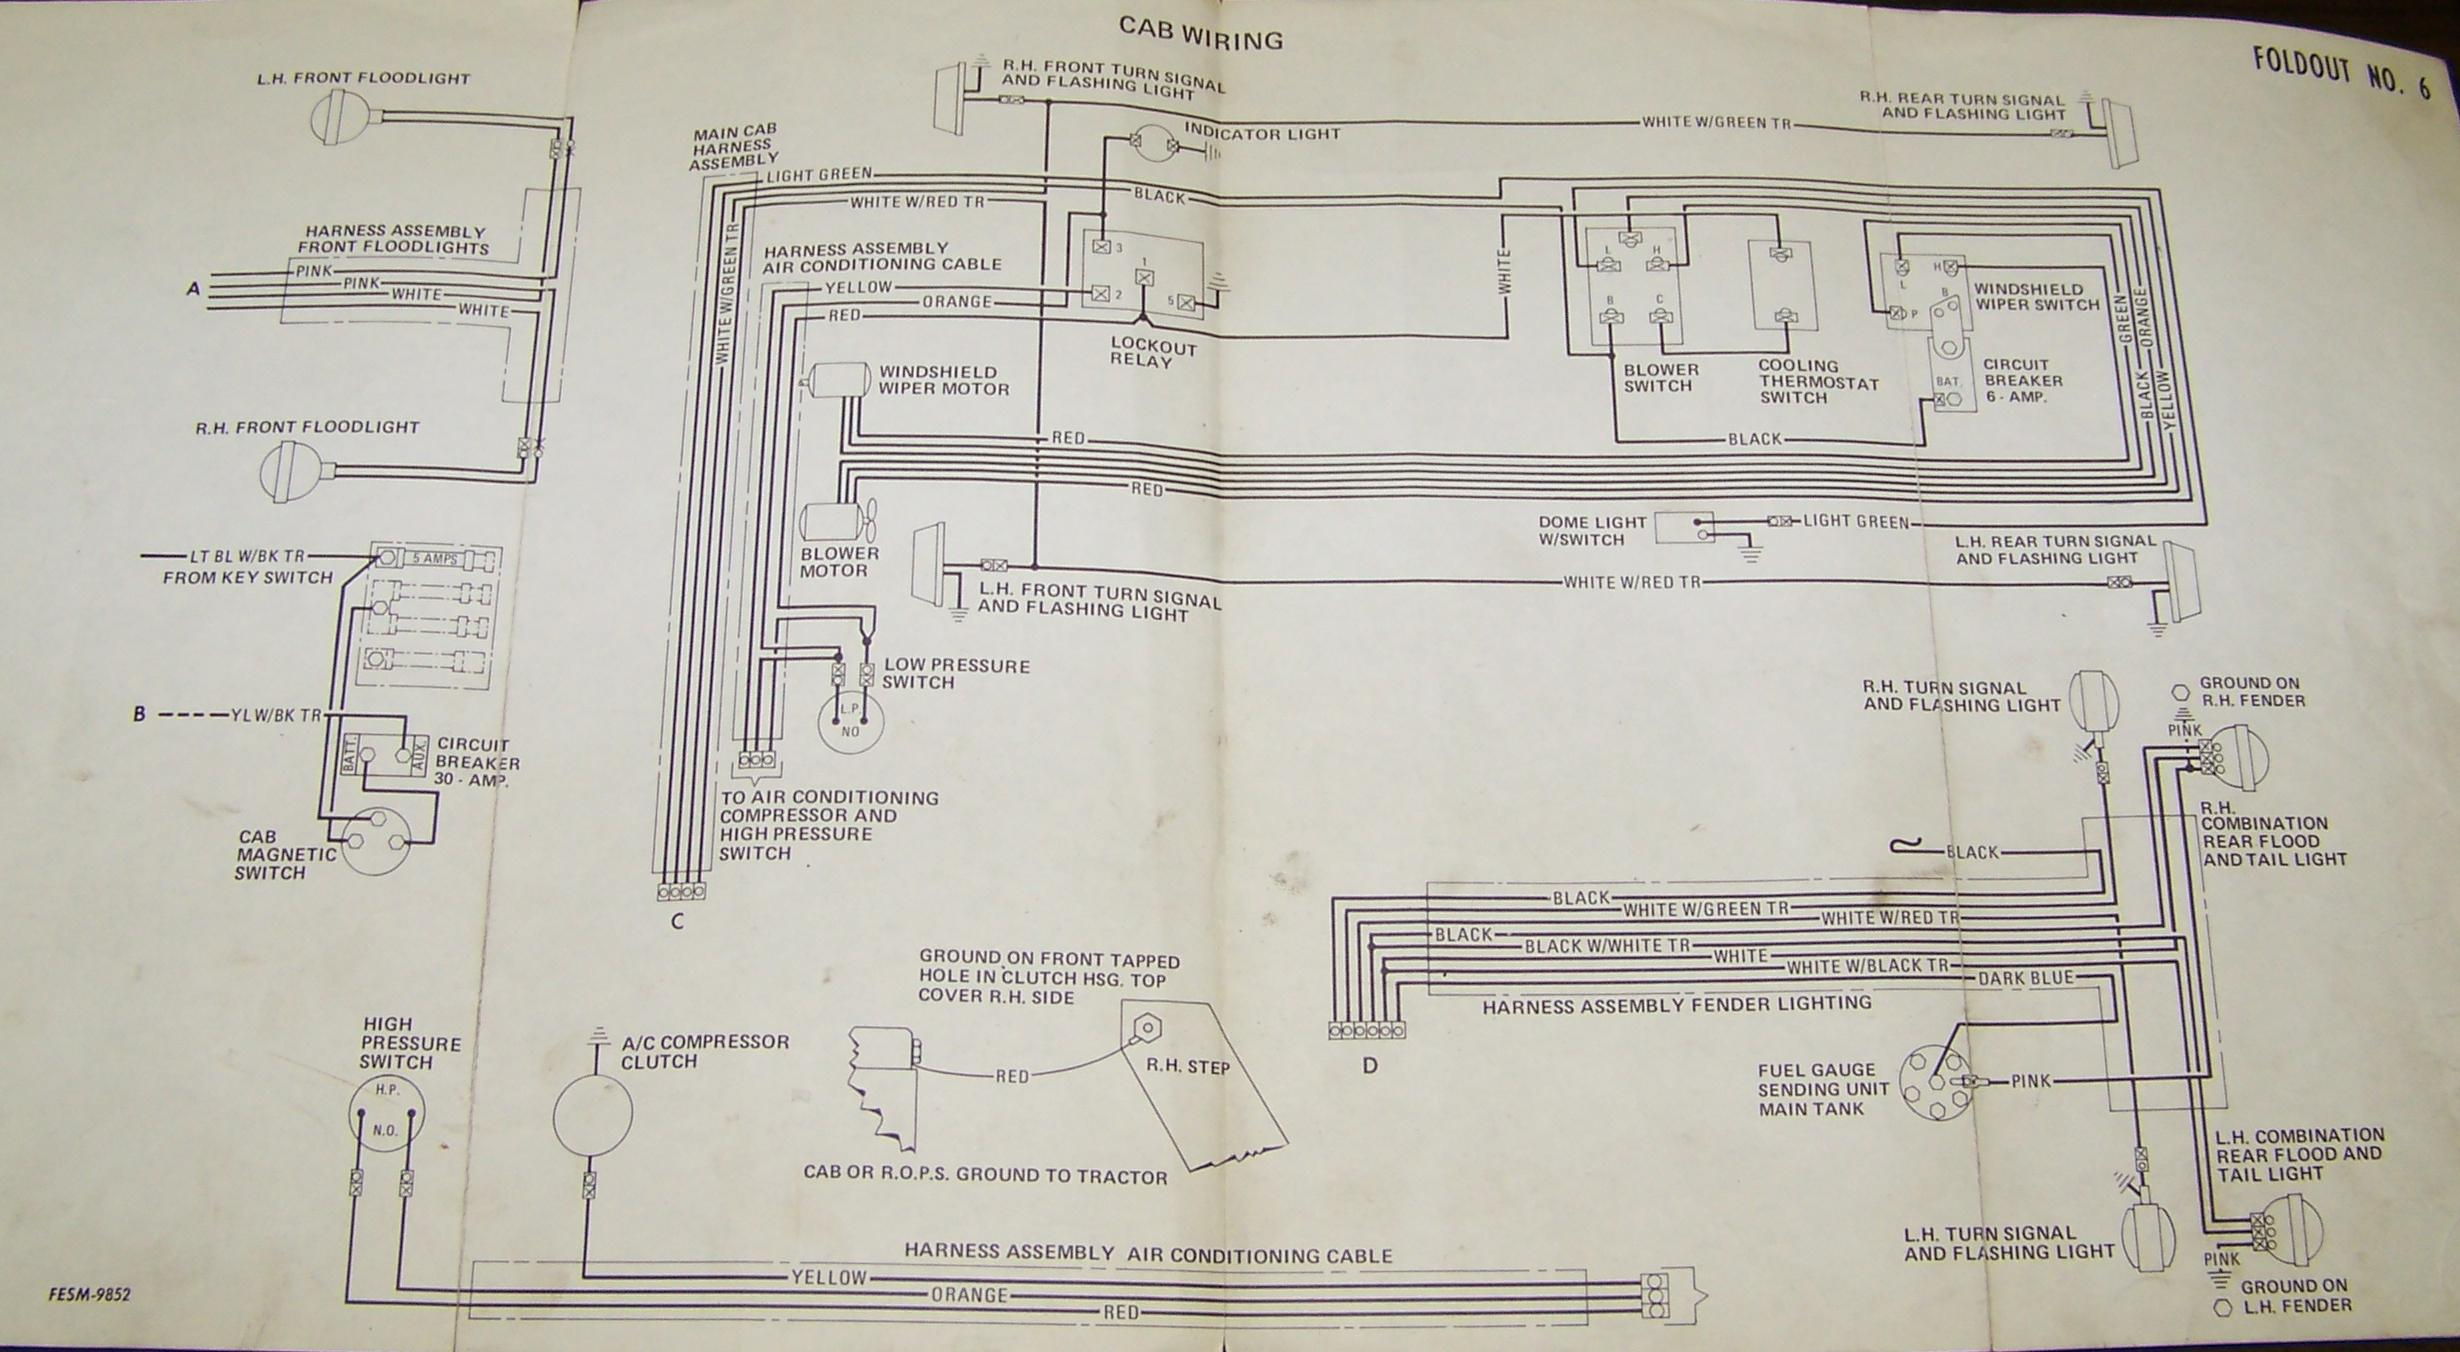 International Truck Wiring Diagram on 2006 international 4300 truck diagram, 4900 international truck headlights, 4900 international truck parts, international 4700 fuse panel diagram, international 4700 dt466e diagram, 2001 4700 international engine diagram, 4900 international box truck, 2005 international 4200 wire diagram, 1996 international 444e engine diagram, international 4300 truck parts diagram, 1996 4900 international battery diagram, international truck ignition wires diagram, international 4900 dt466e starter wire diagram, international 4900 electrical diagram, 1996 international 2674 instrument diagram, 4900 international truck service manual,